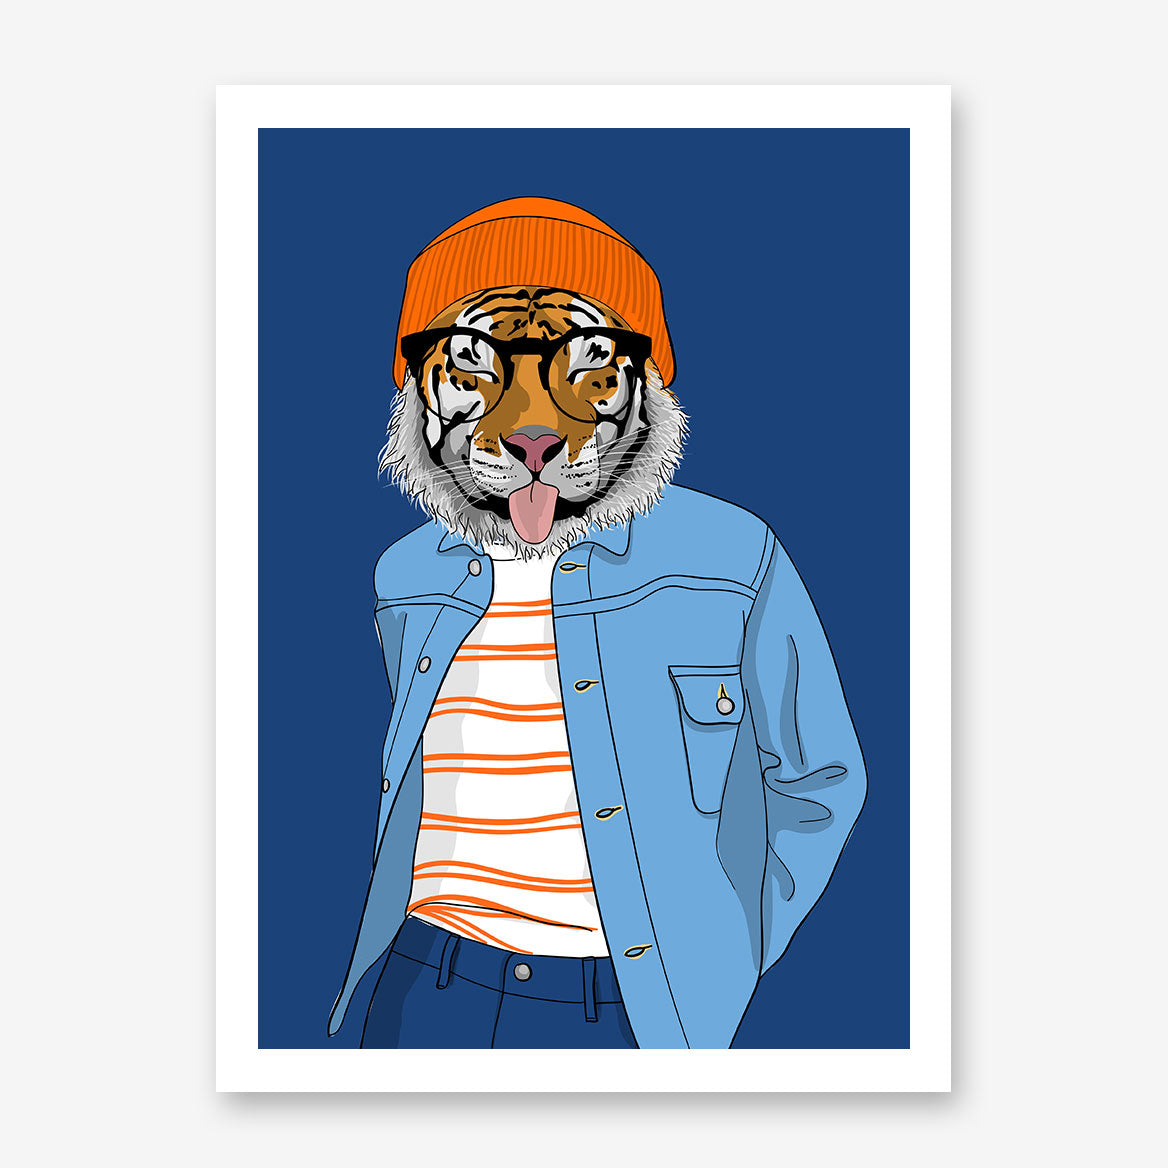 Fashion poster print with a cool dressed tiger sticking his tongue out, on blue background